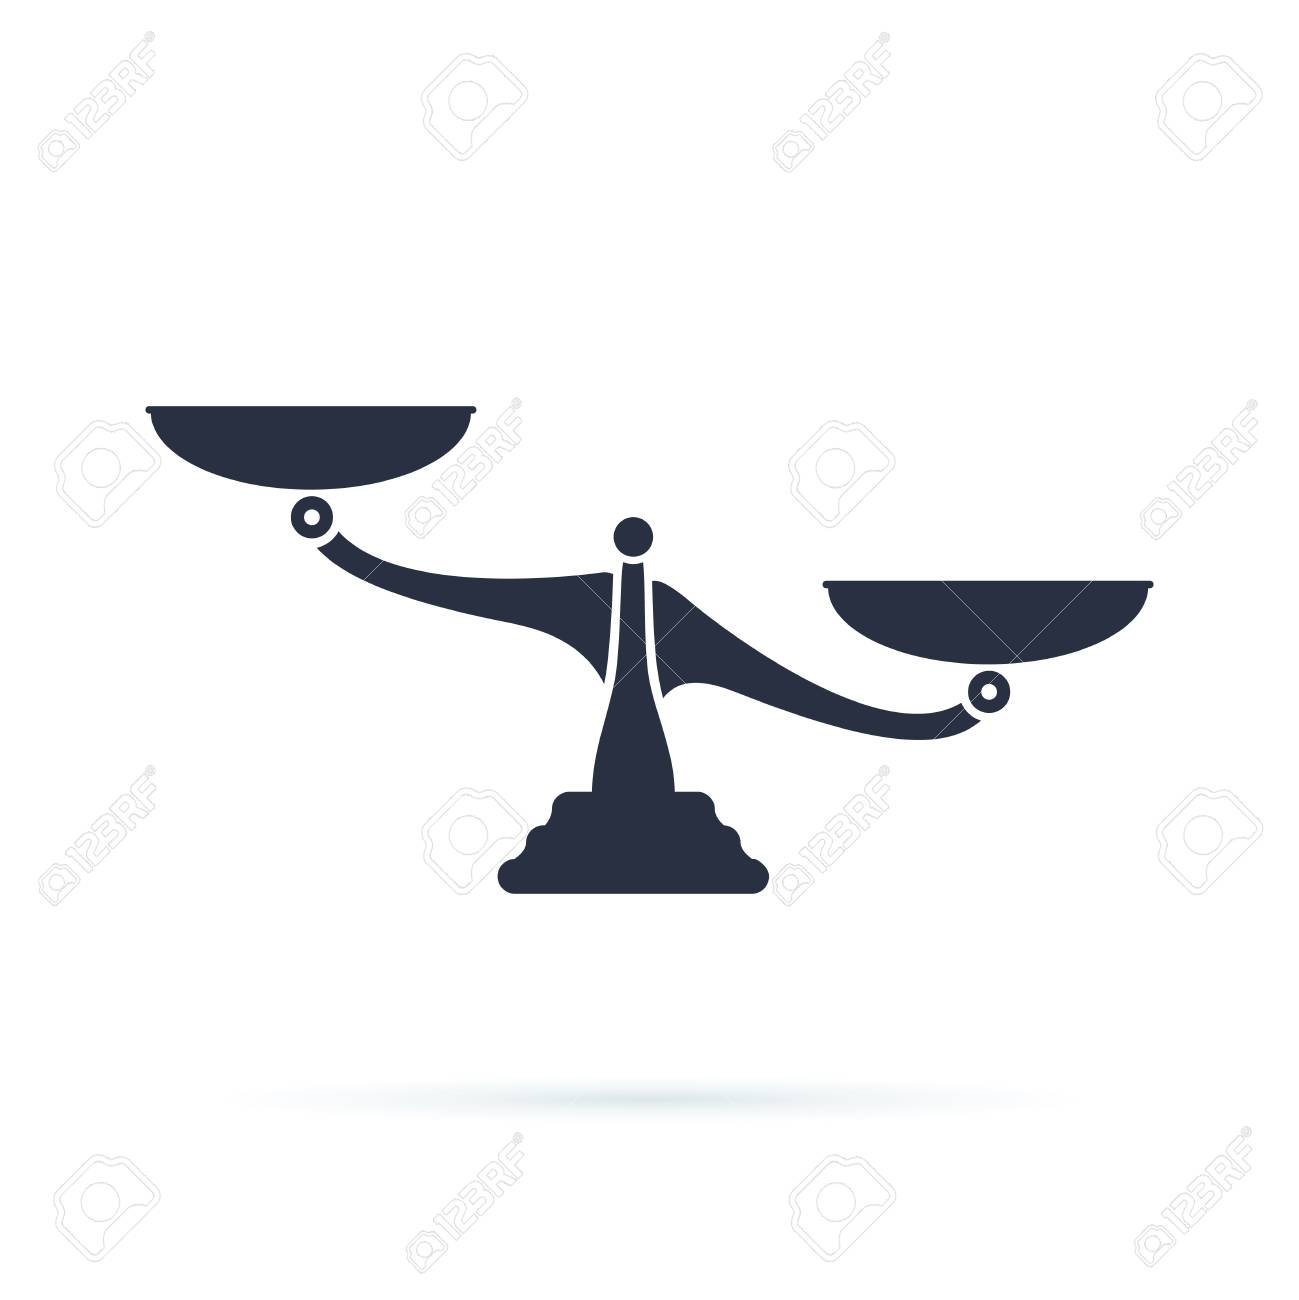 Scales, Flat design, vector illustration on white background. Libra, balance vector icon. Weight symbol. Compare concept, analysis or equality measure. Solid icon for web isolated on white - 123990180